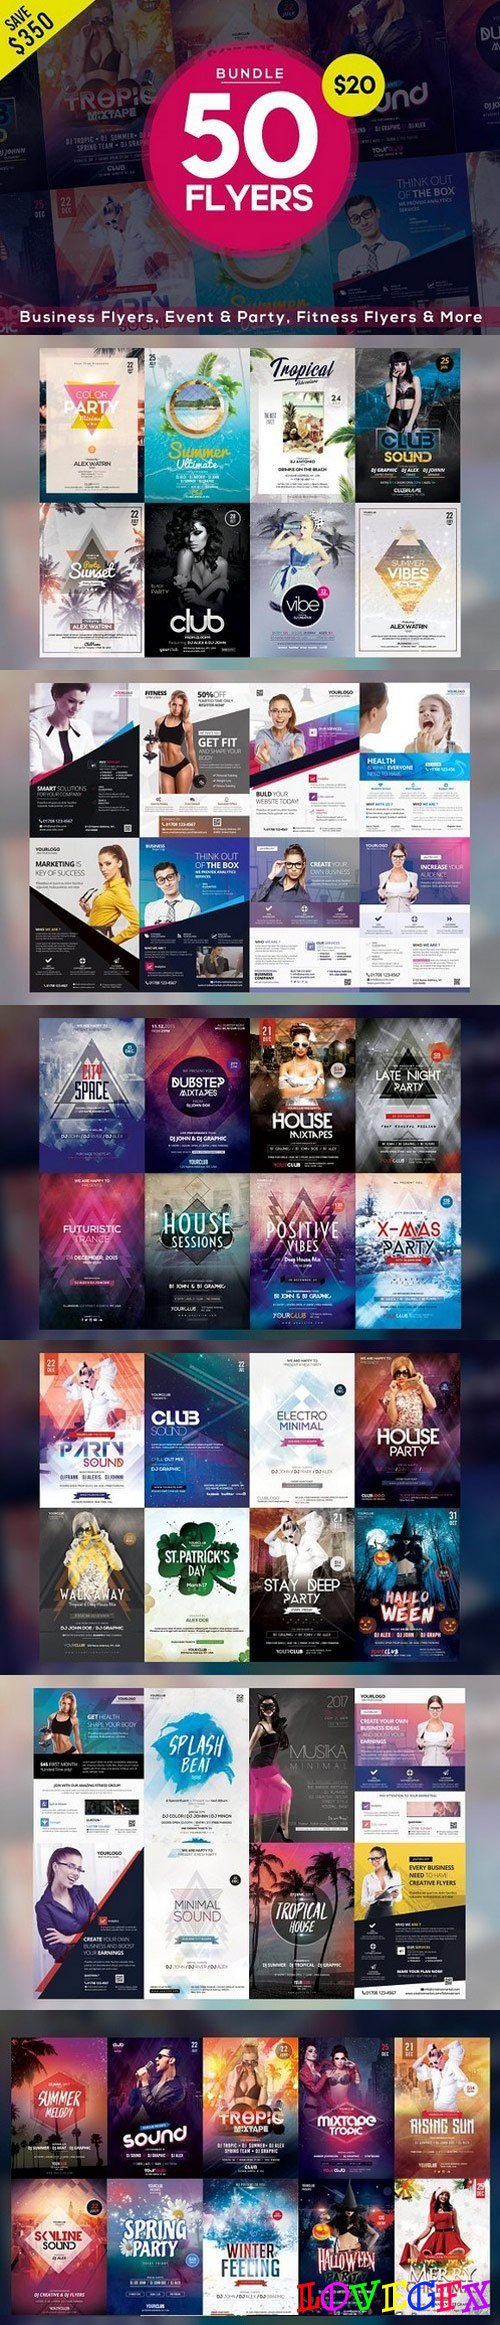 BUNDLE | 50 PSD FLYERS TEMPLATES 1607396